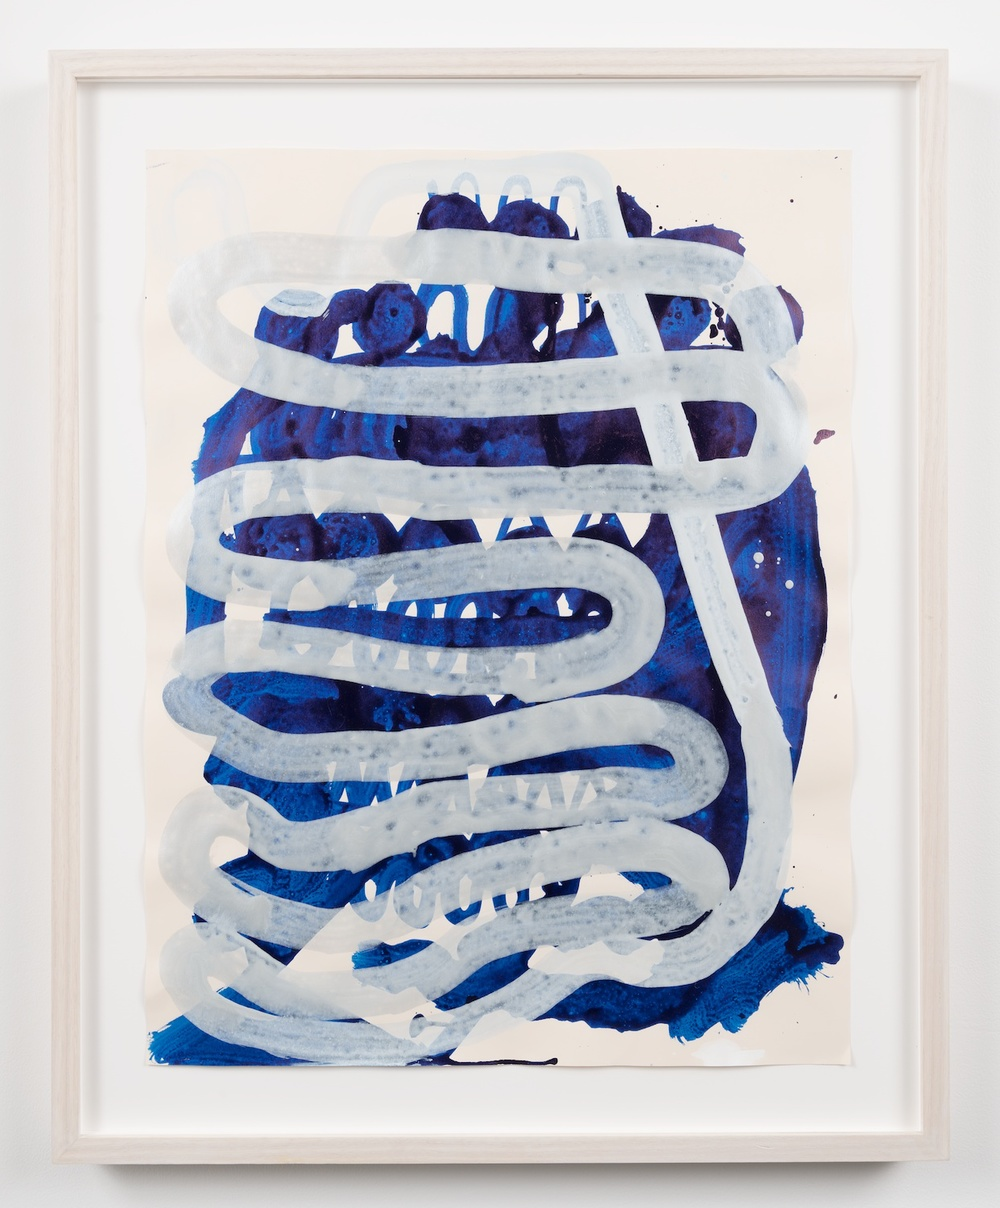 William J. O'Brien  Untitled  2013 Ink on paper 25h x 19 ½w in WOB951